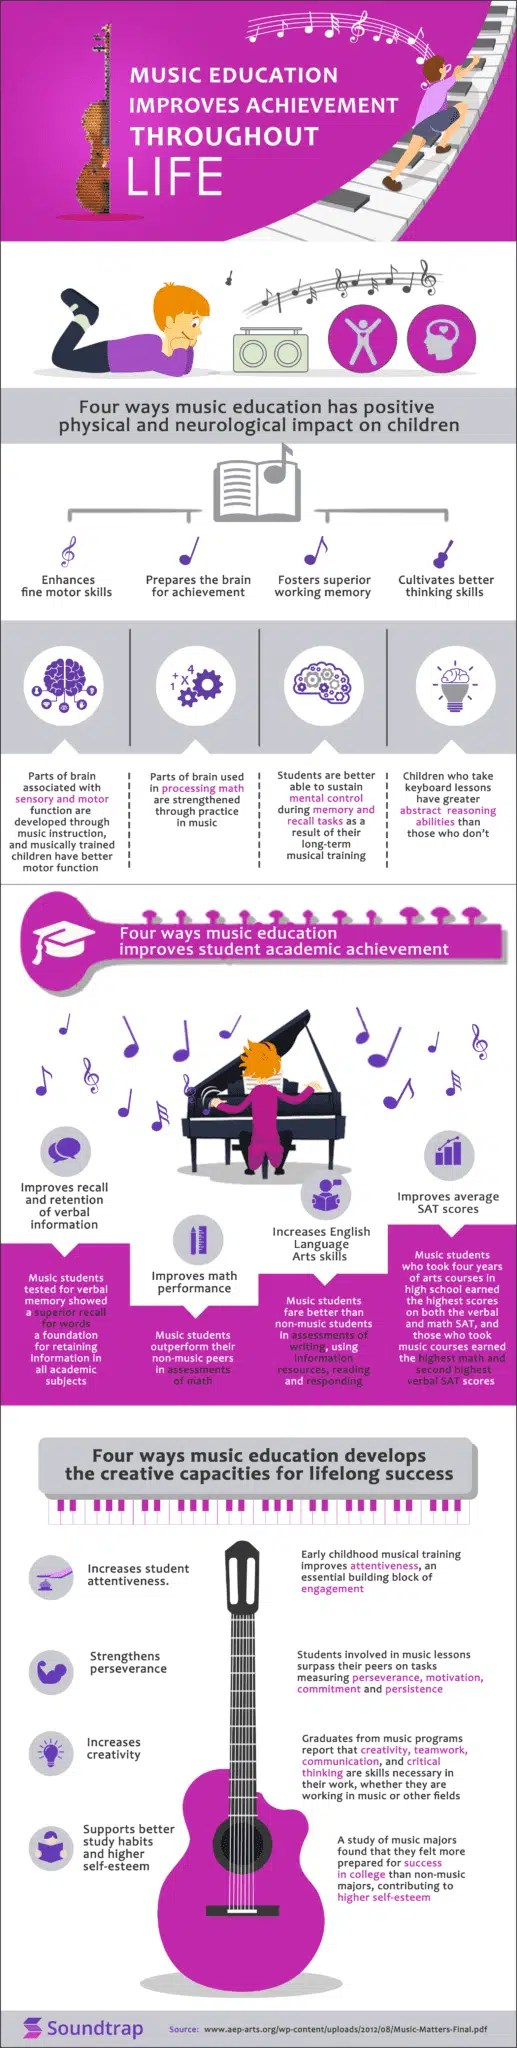 Infographic about the benefits of music education